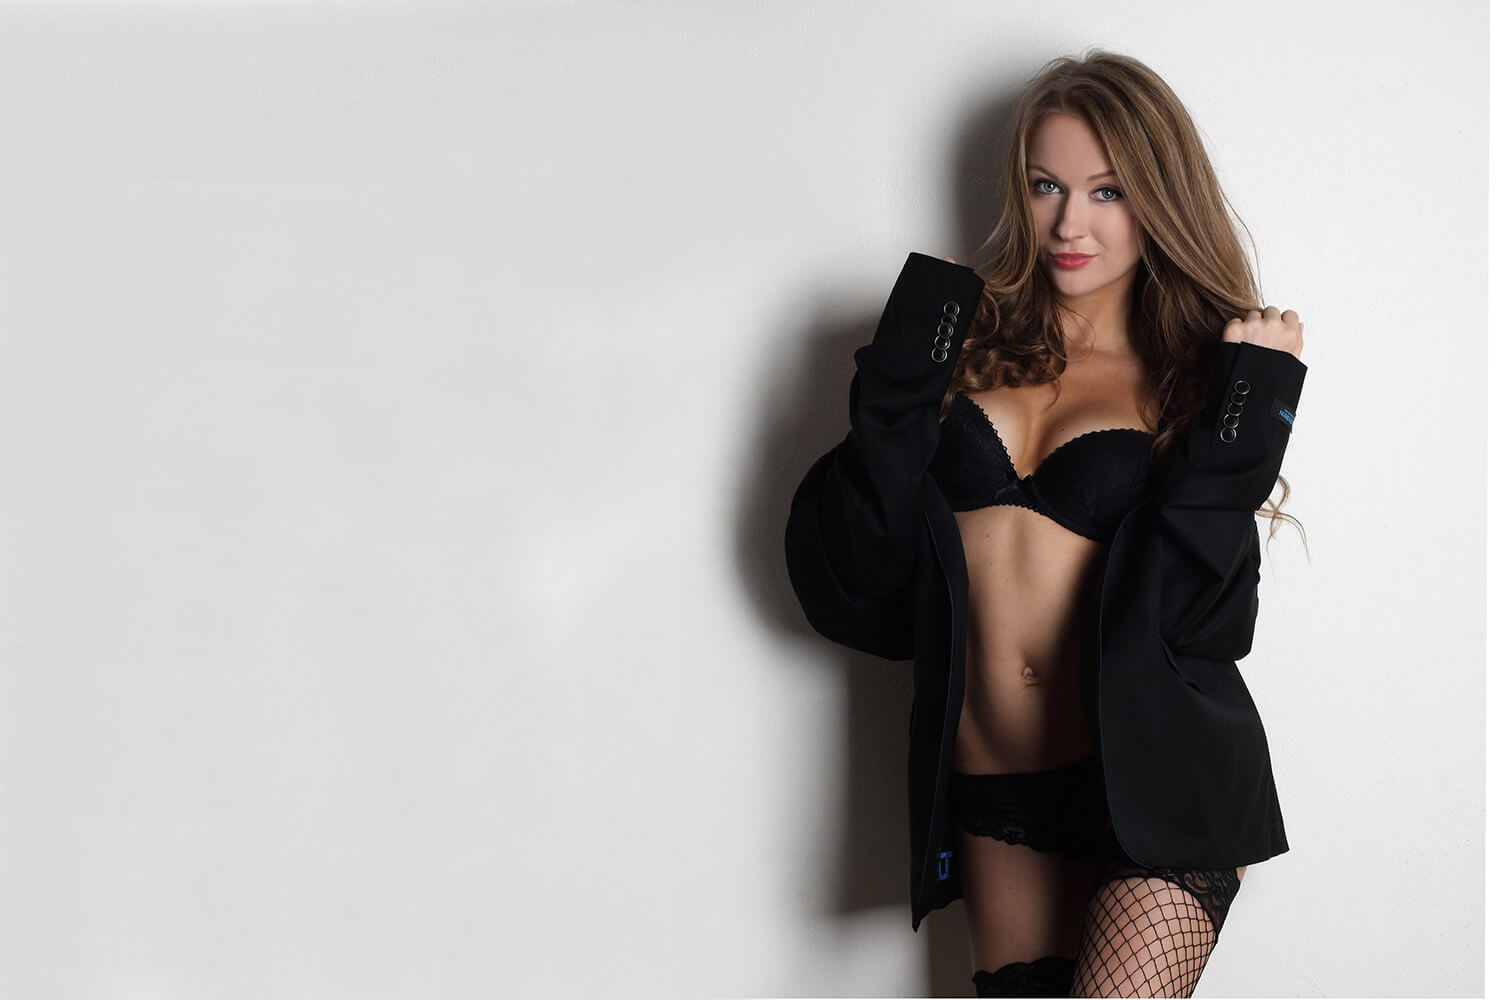 boudoir photo of a woman in lingerie and a black jacket